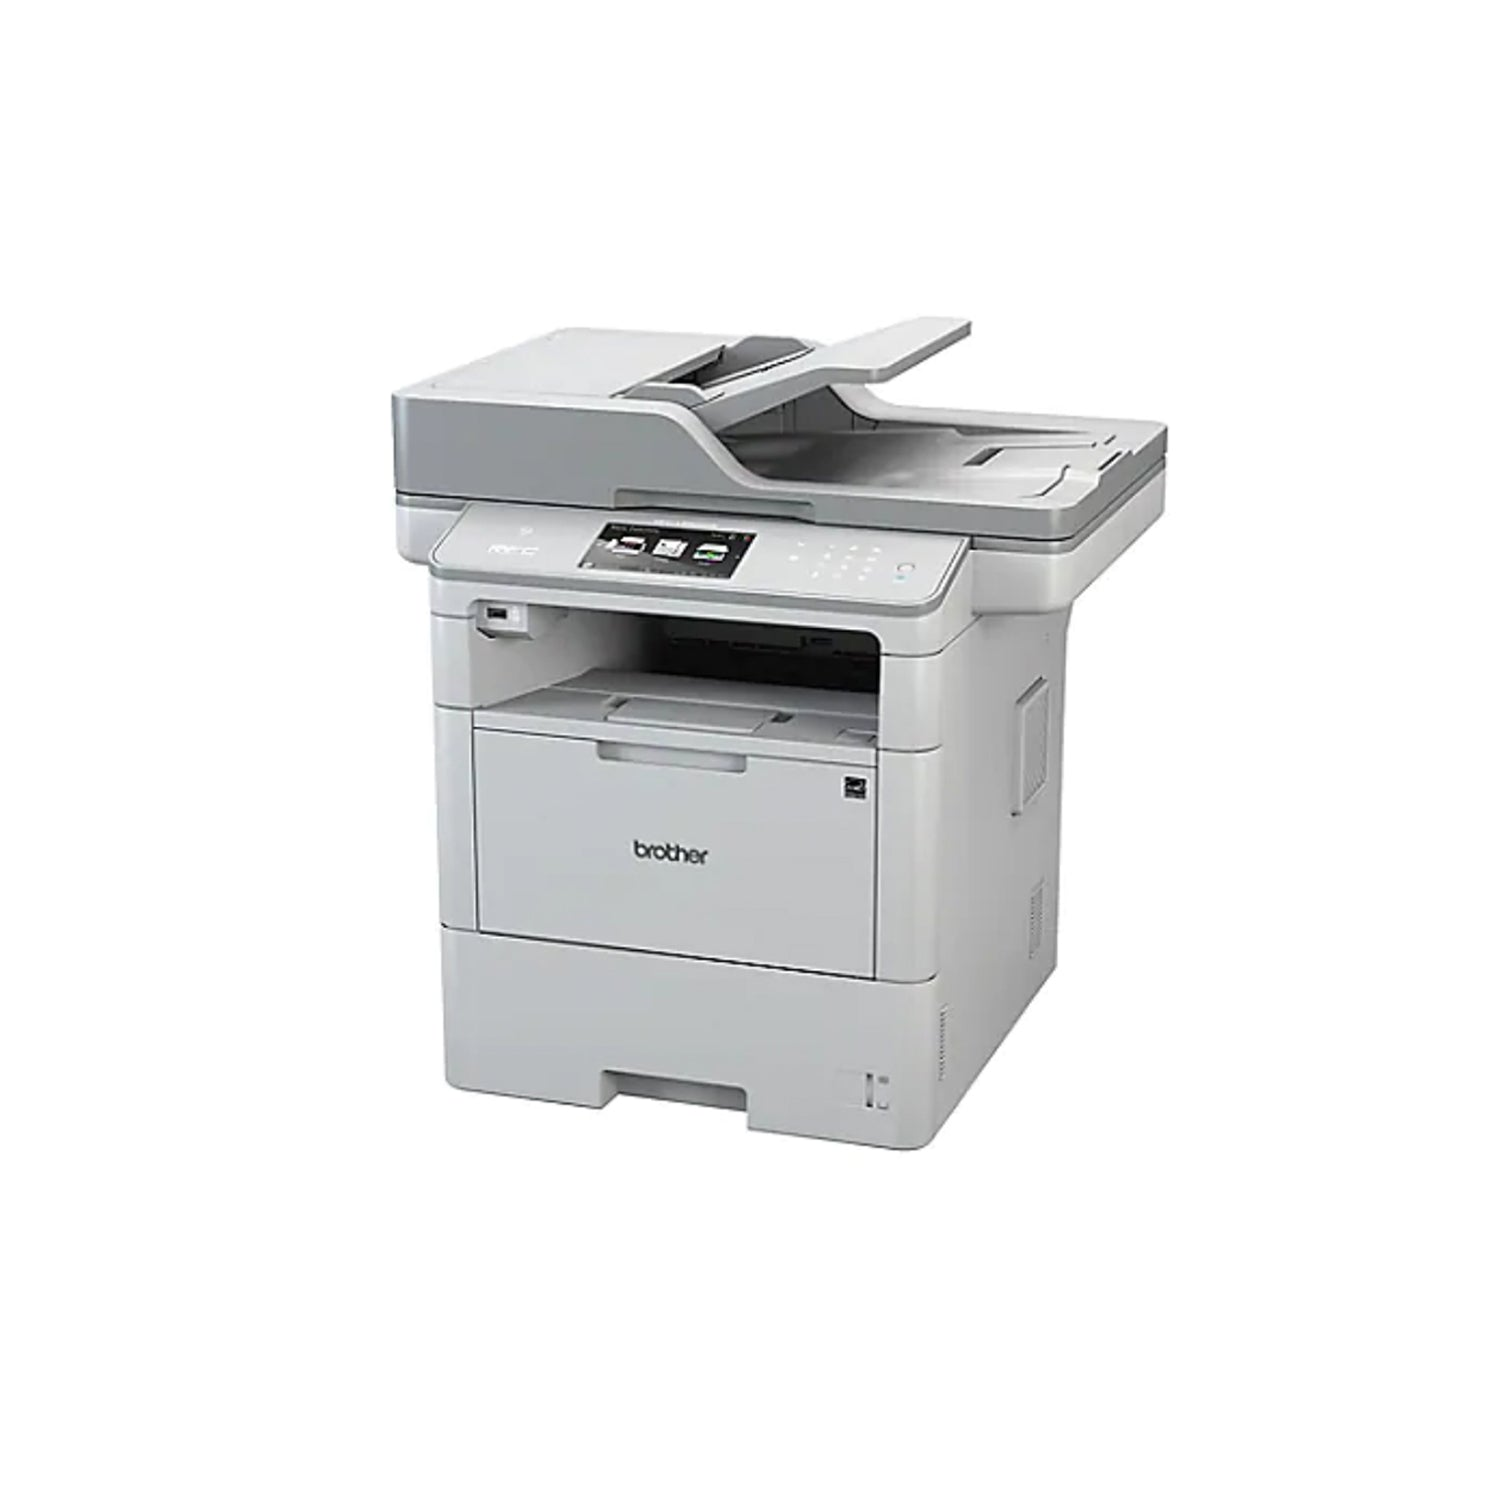 Brother MFC L6900DW monochrome laser all-in-one printer